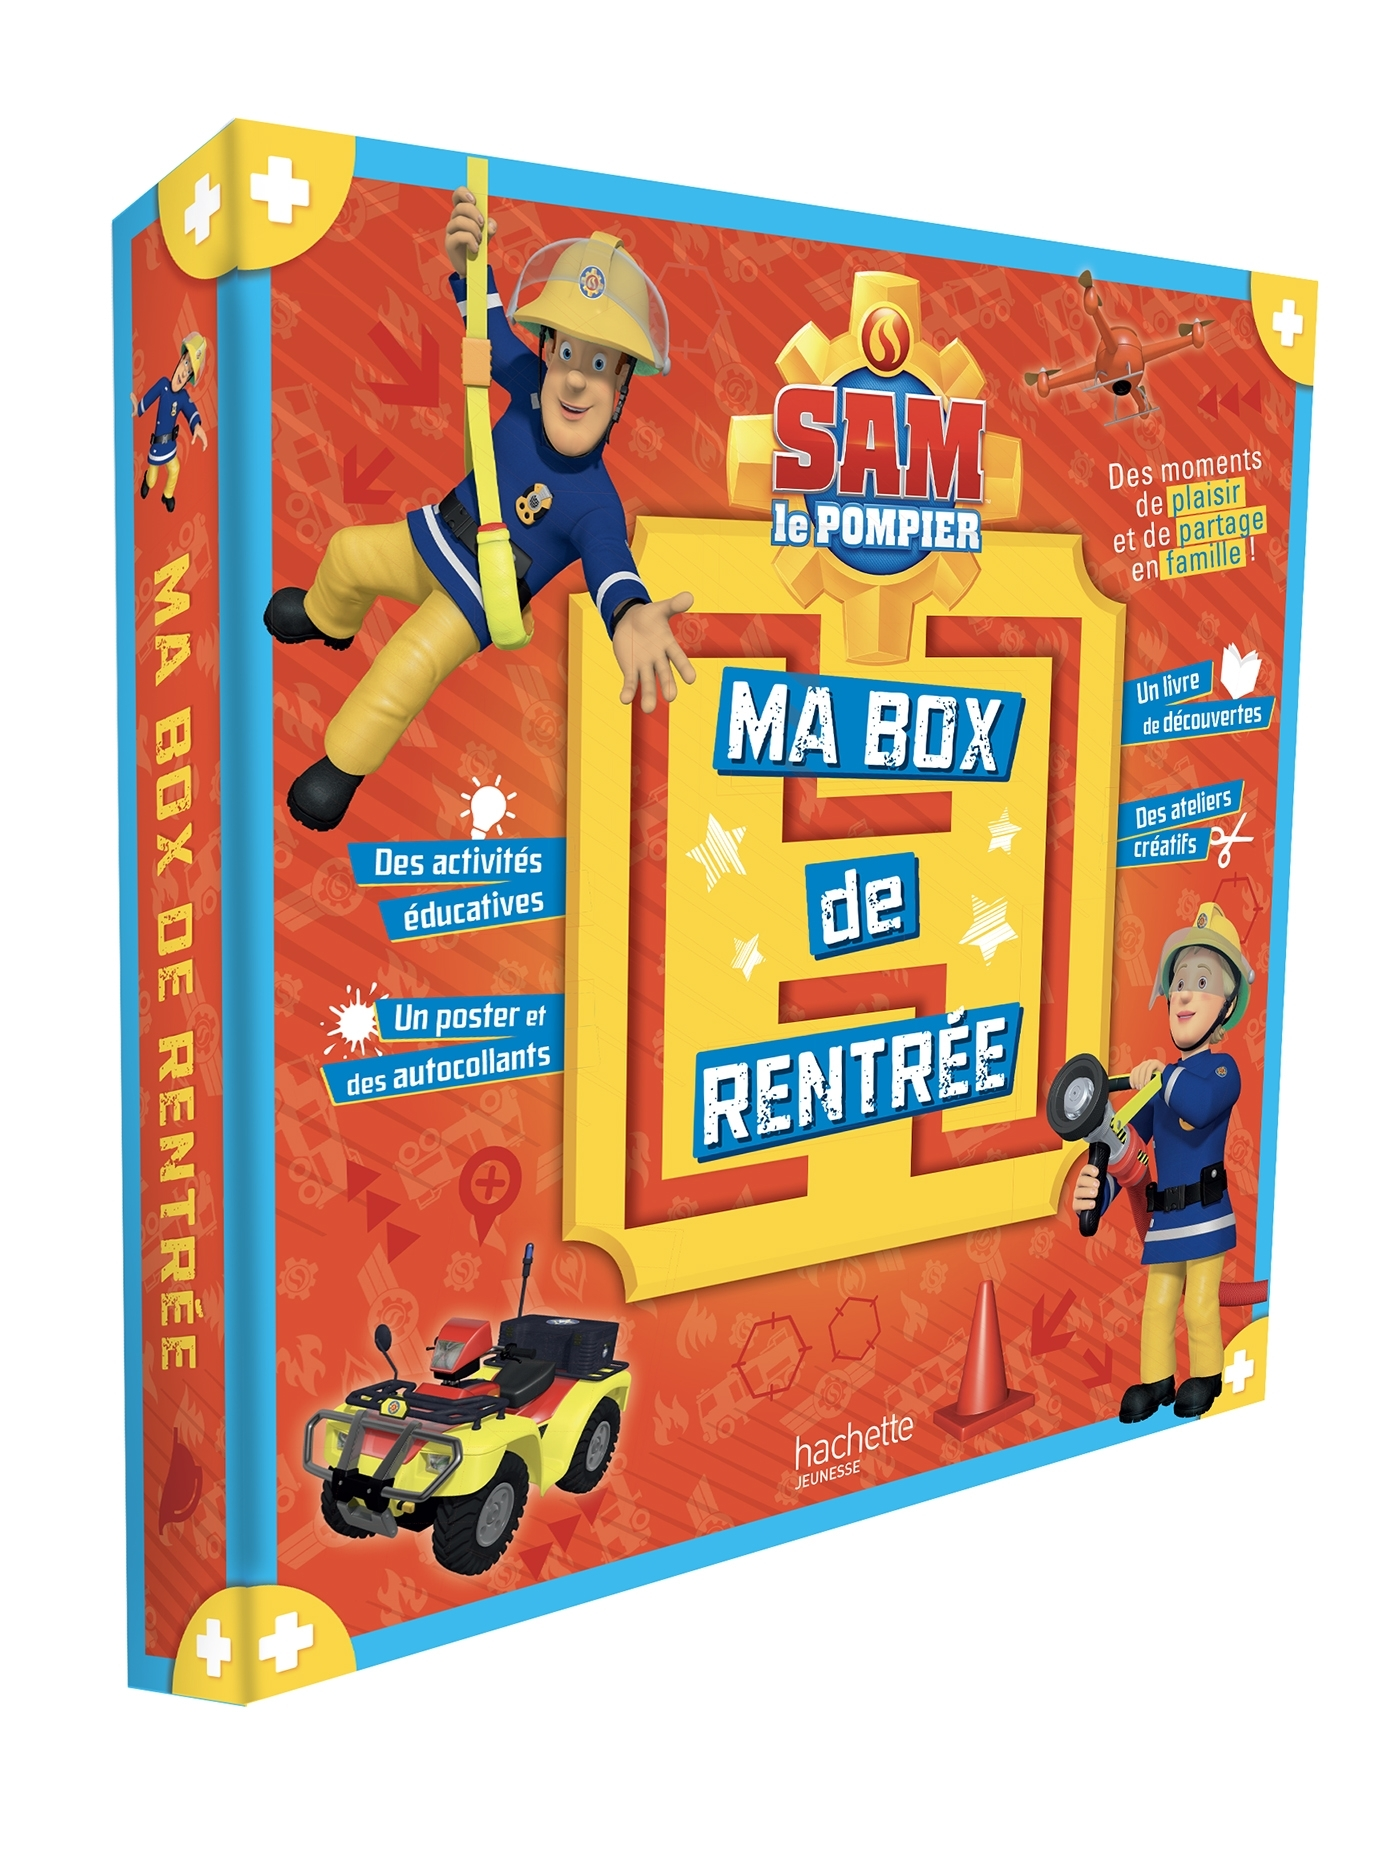 SAM LE POMPIER - BOX RENTREE